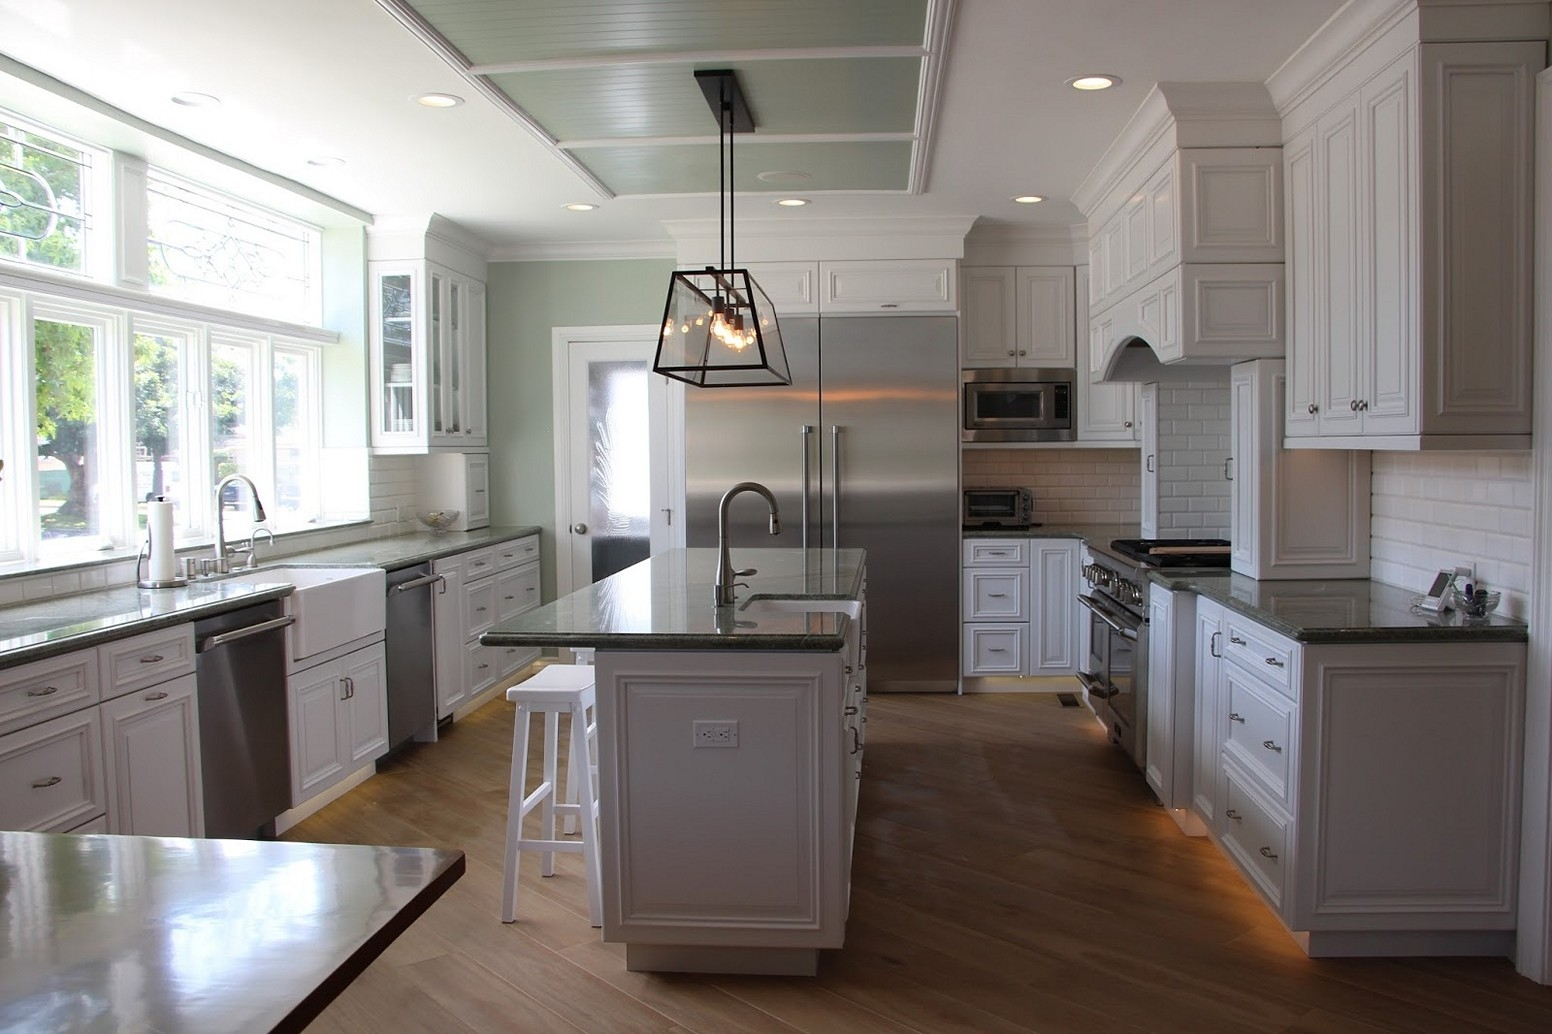 Gray Kitchen Cabinets With Black Granitekitchen cabinet and countertop colors luxurious home design